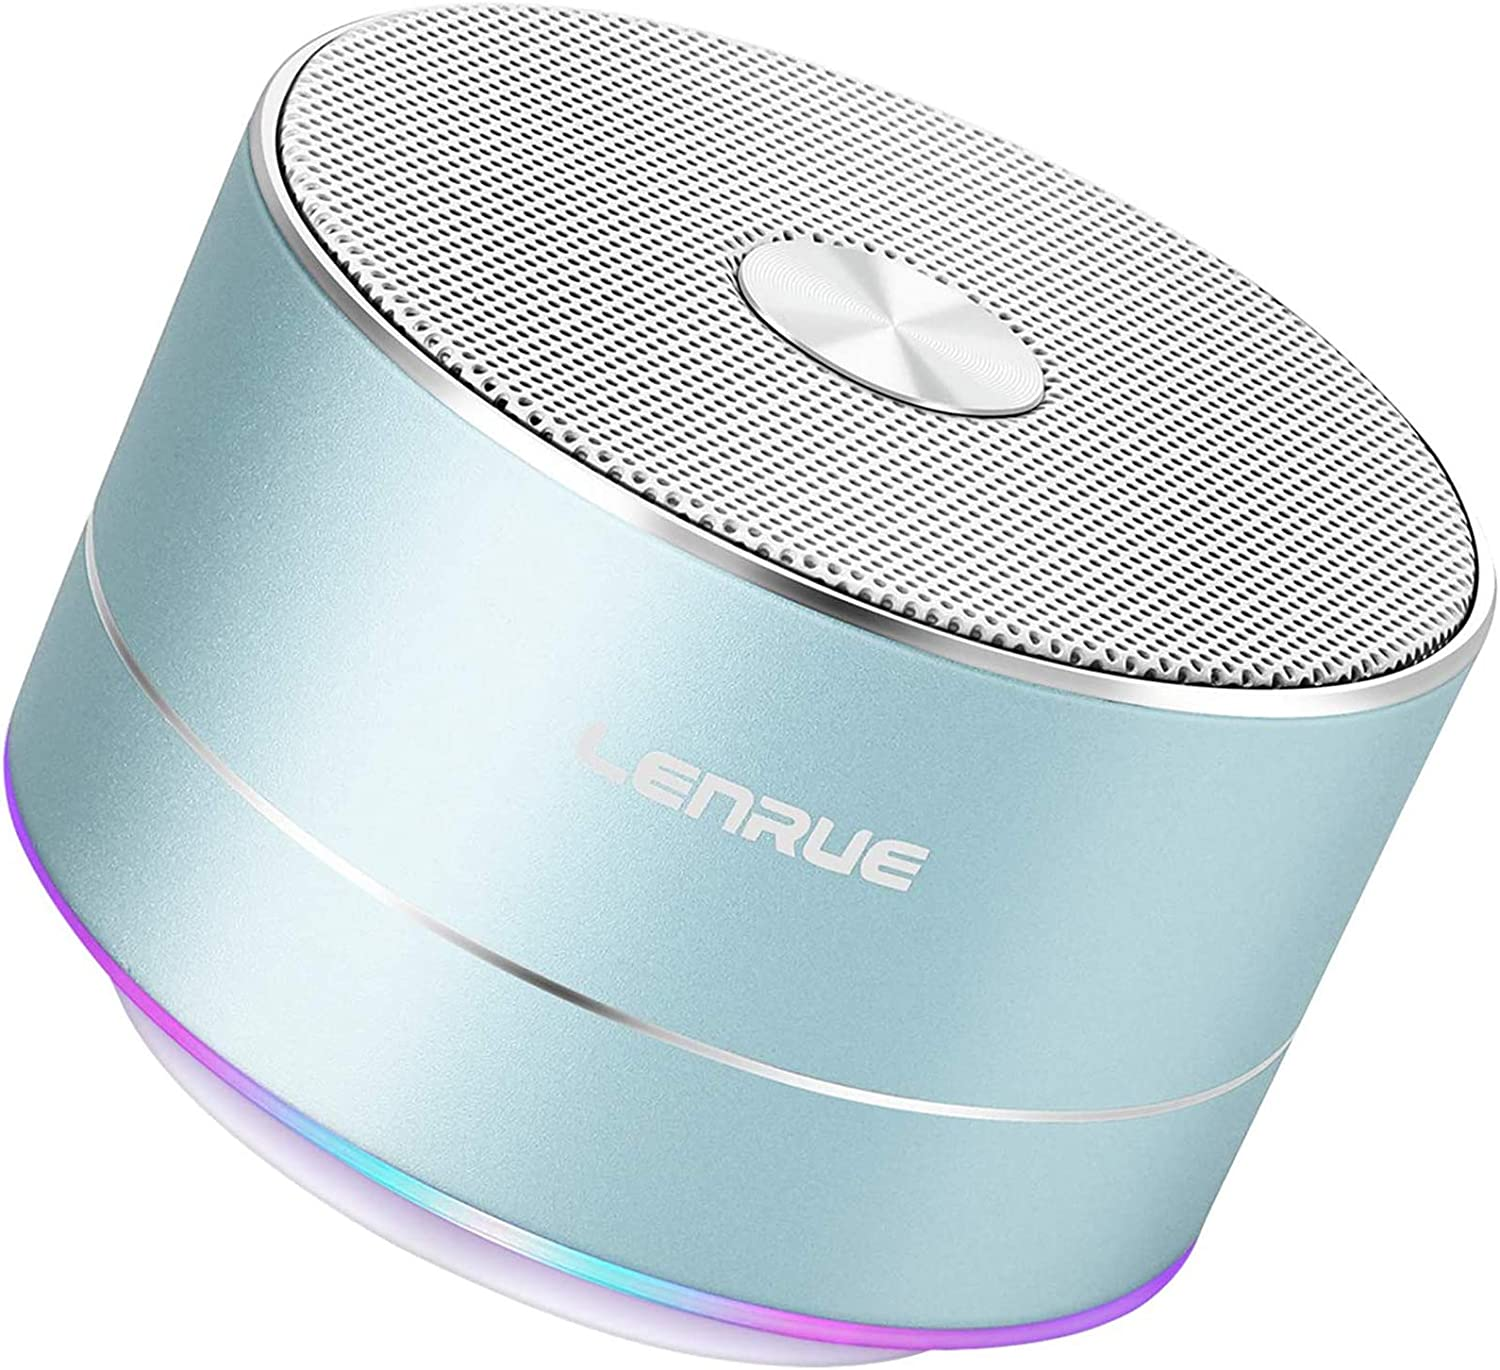 LENRUE Portable Wireless Bluetooth Speaker with Built-in-Mic,Handsfree Call,AUX Line,TF Card Slot,HD Sound and Bass for iPhone Ipad Android Smartphone and More